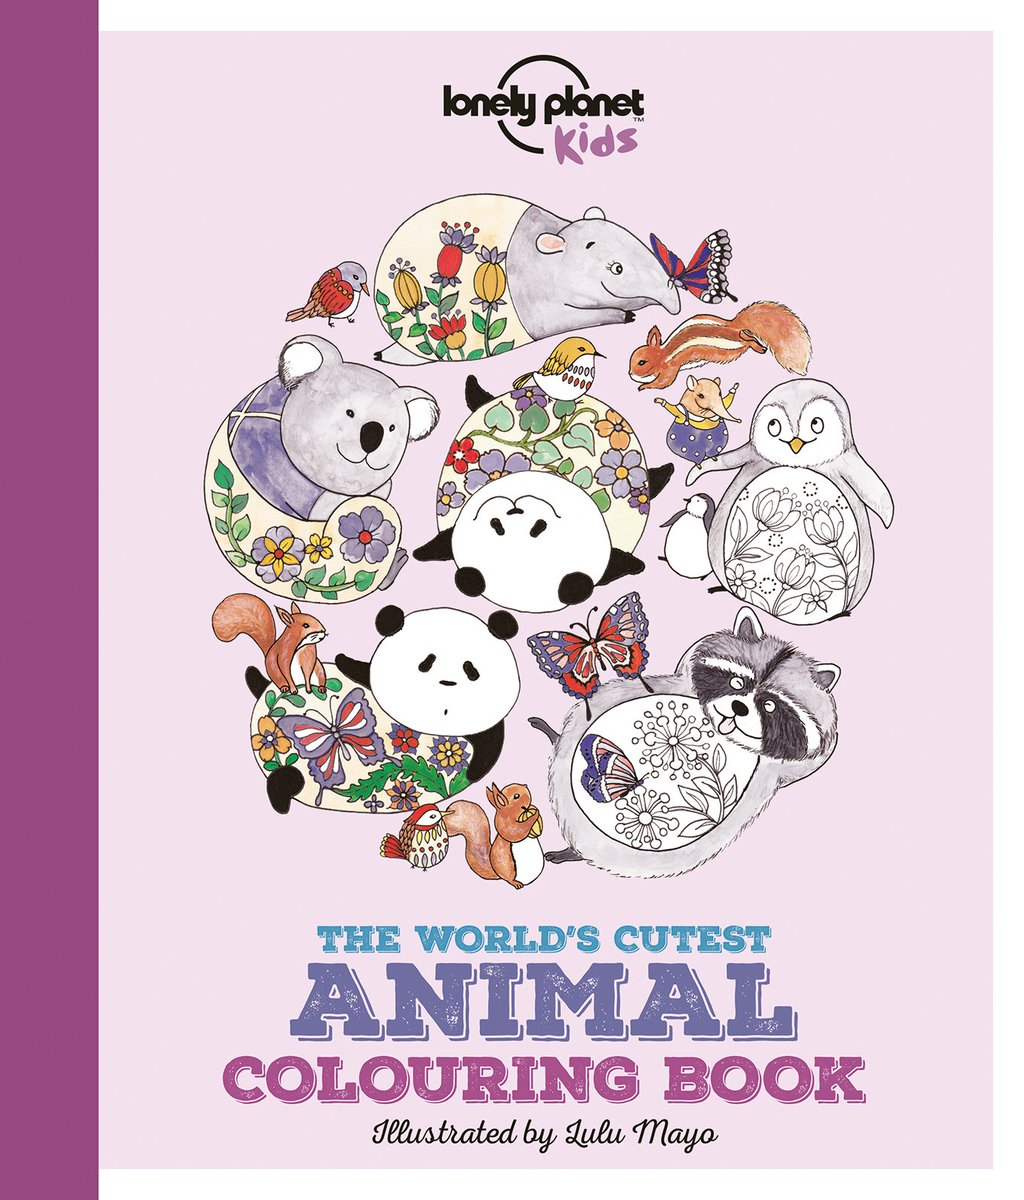 Lonely planet kids on twitter books for the animal lover in your lonely planet kids on twitter books for the animal lover in your family learn about how they live get yourself some fun facts and then get the pencils solutioingenieria Choice Image